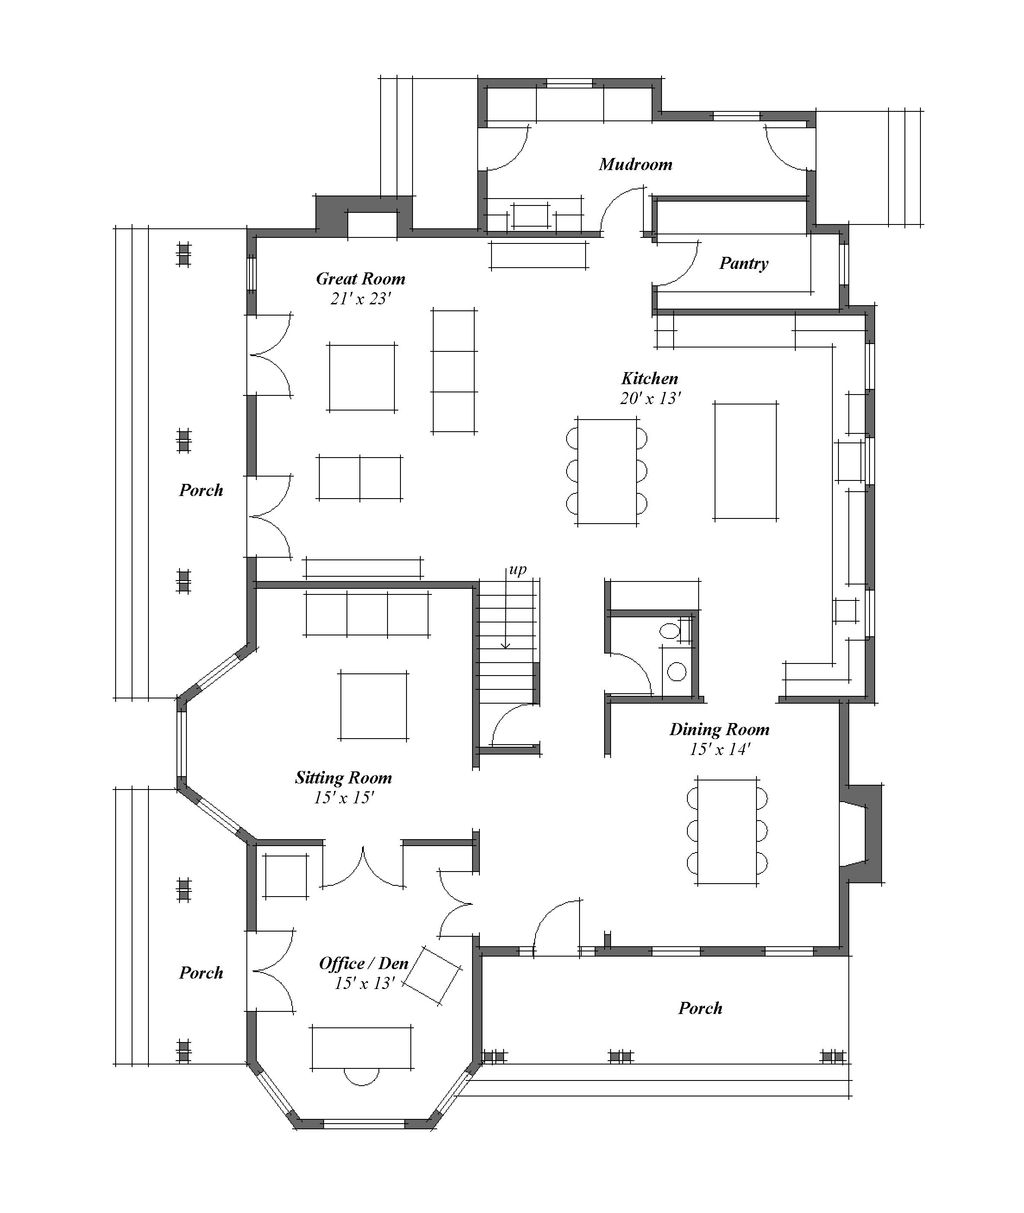 Plan houseplans plans pinterest bedrooms country